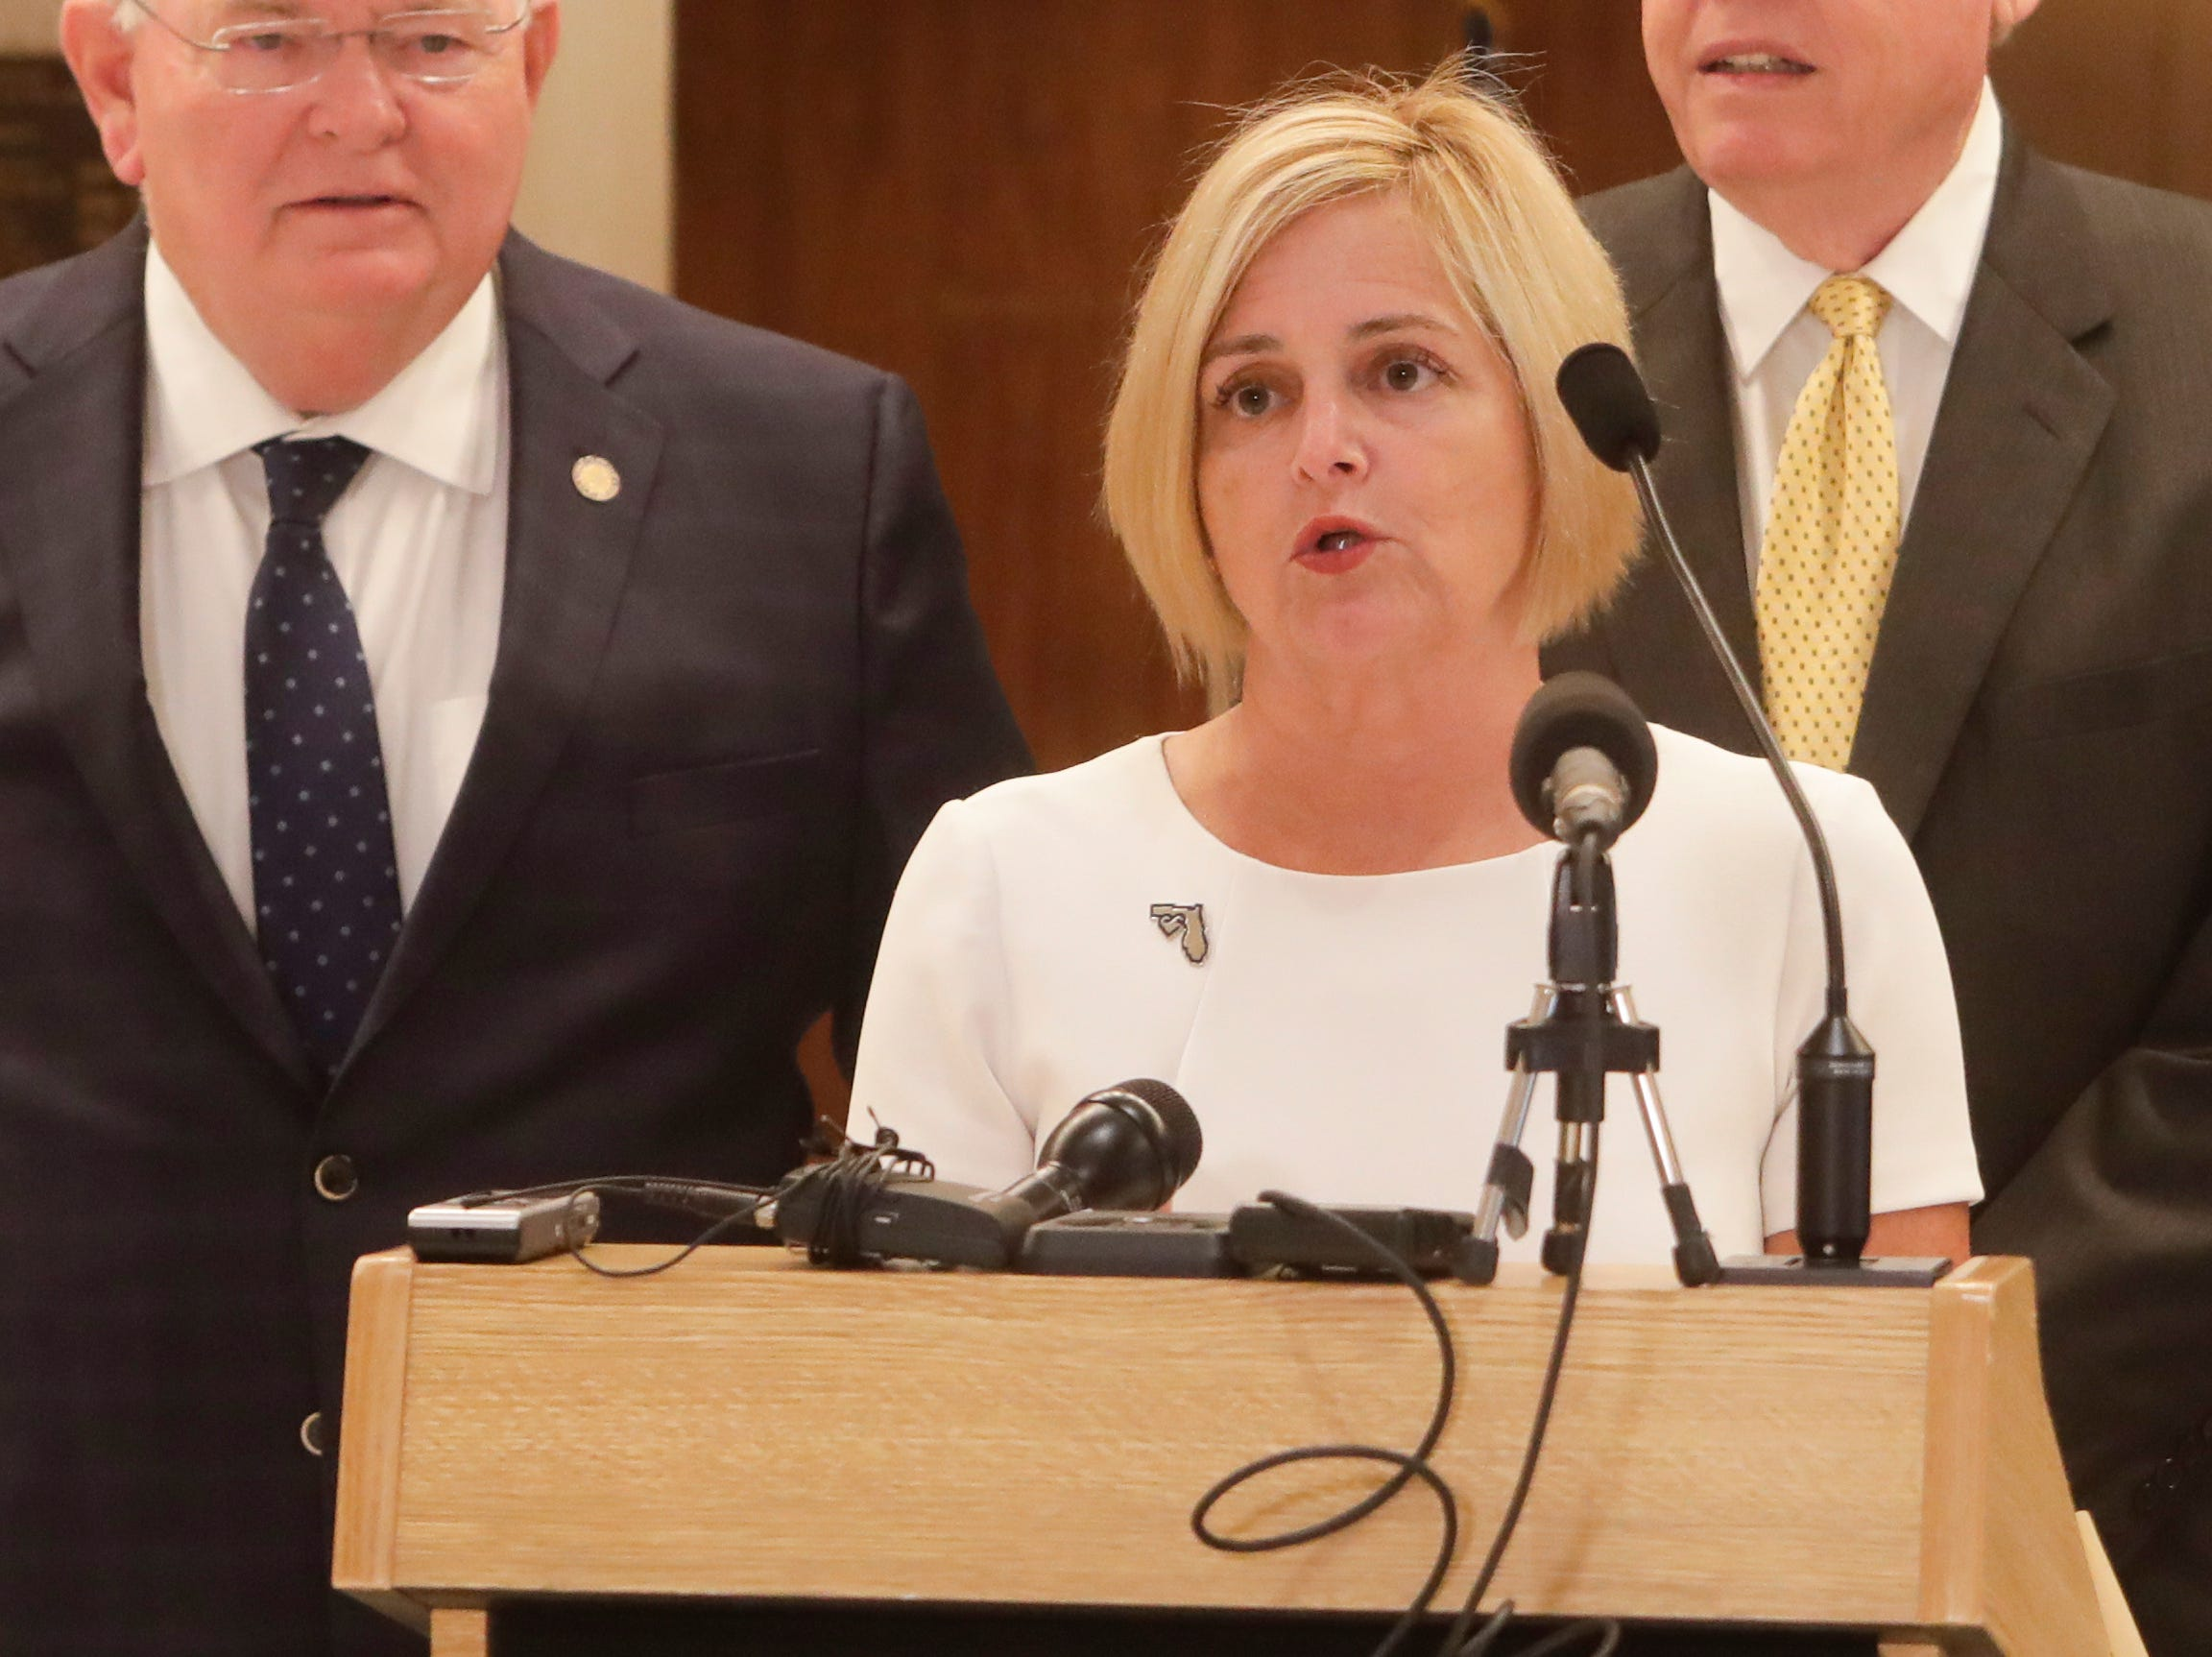 Rep. Loranne Ausley, D-Tallahassee, speaks during a news conference held to discuss state disaster relief funds with college sports coaches and lawmakers Thursday, April 18, 2019.